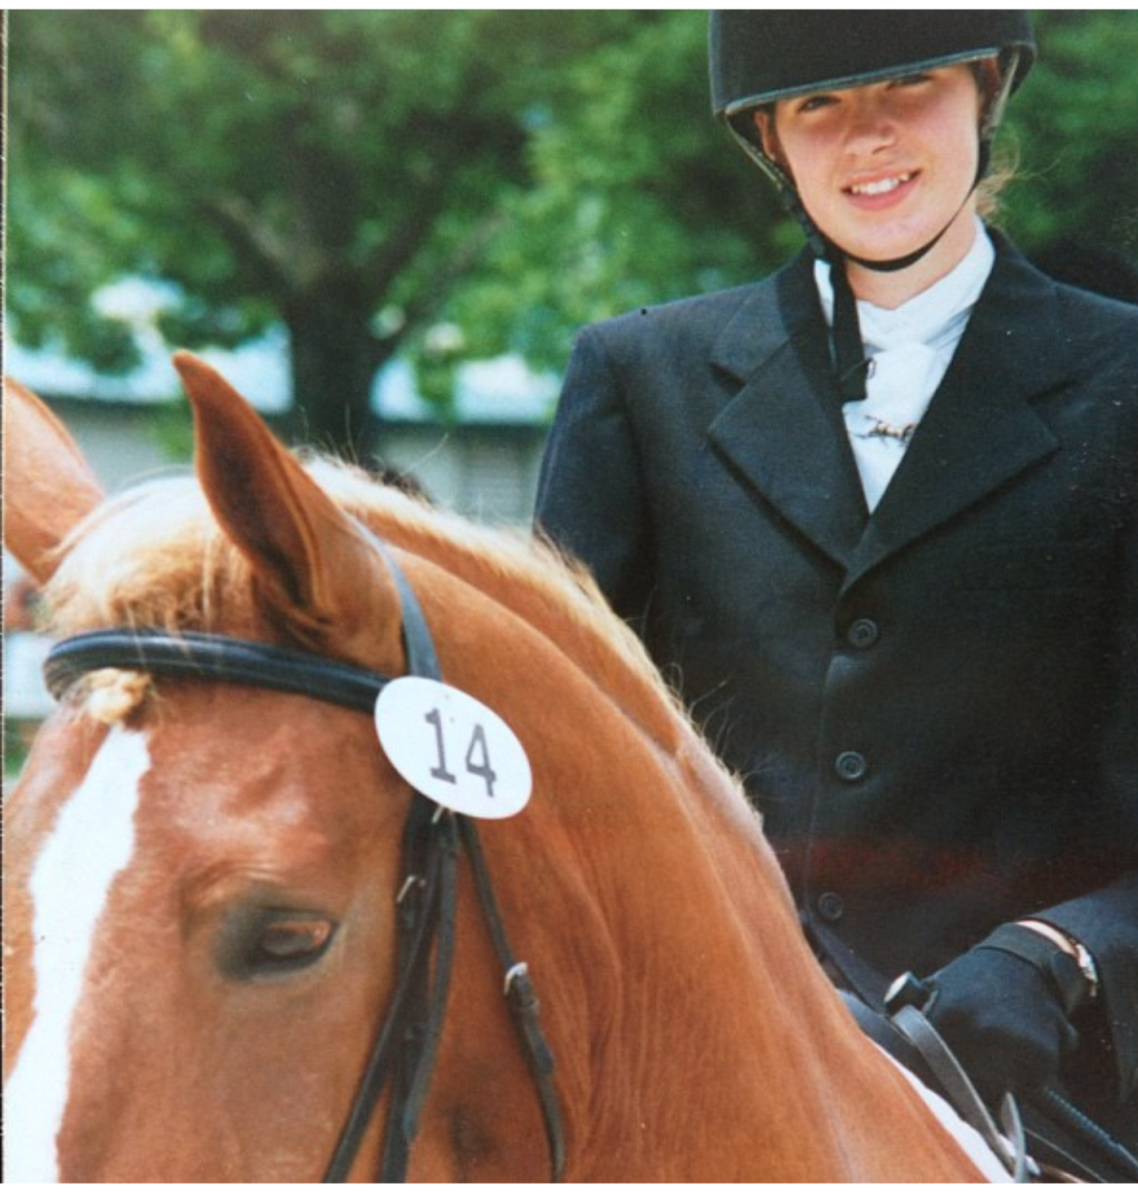 This is Troy, the very first horse I owned, a handsome draft cross, unfortunately not a good match due to arthritis in his pasterns. Even with the best of intentions, some matches don't work out.